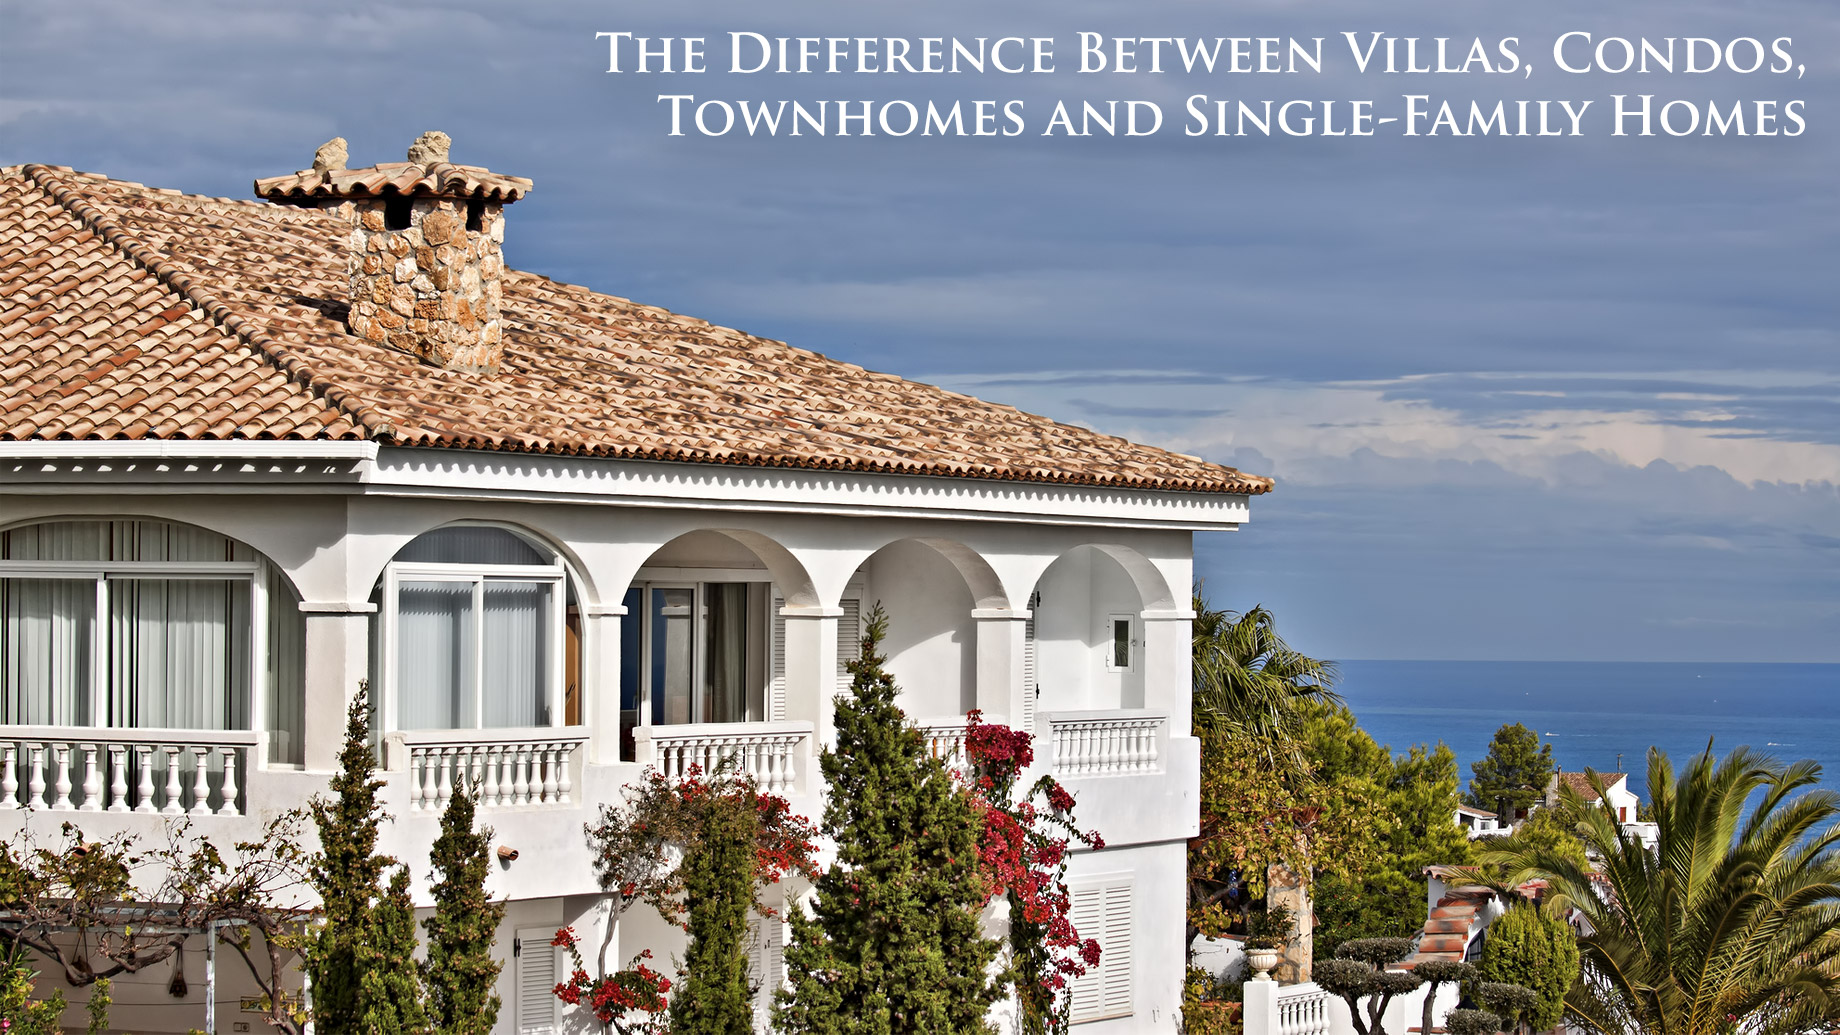 The Difference Between Villas, Condos, Townhomes, and Single-Family Homes